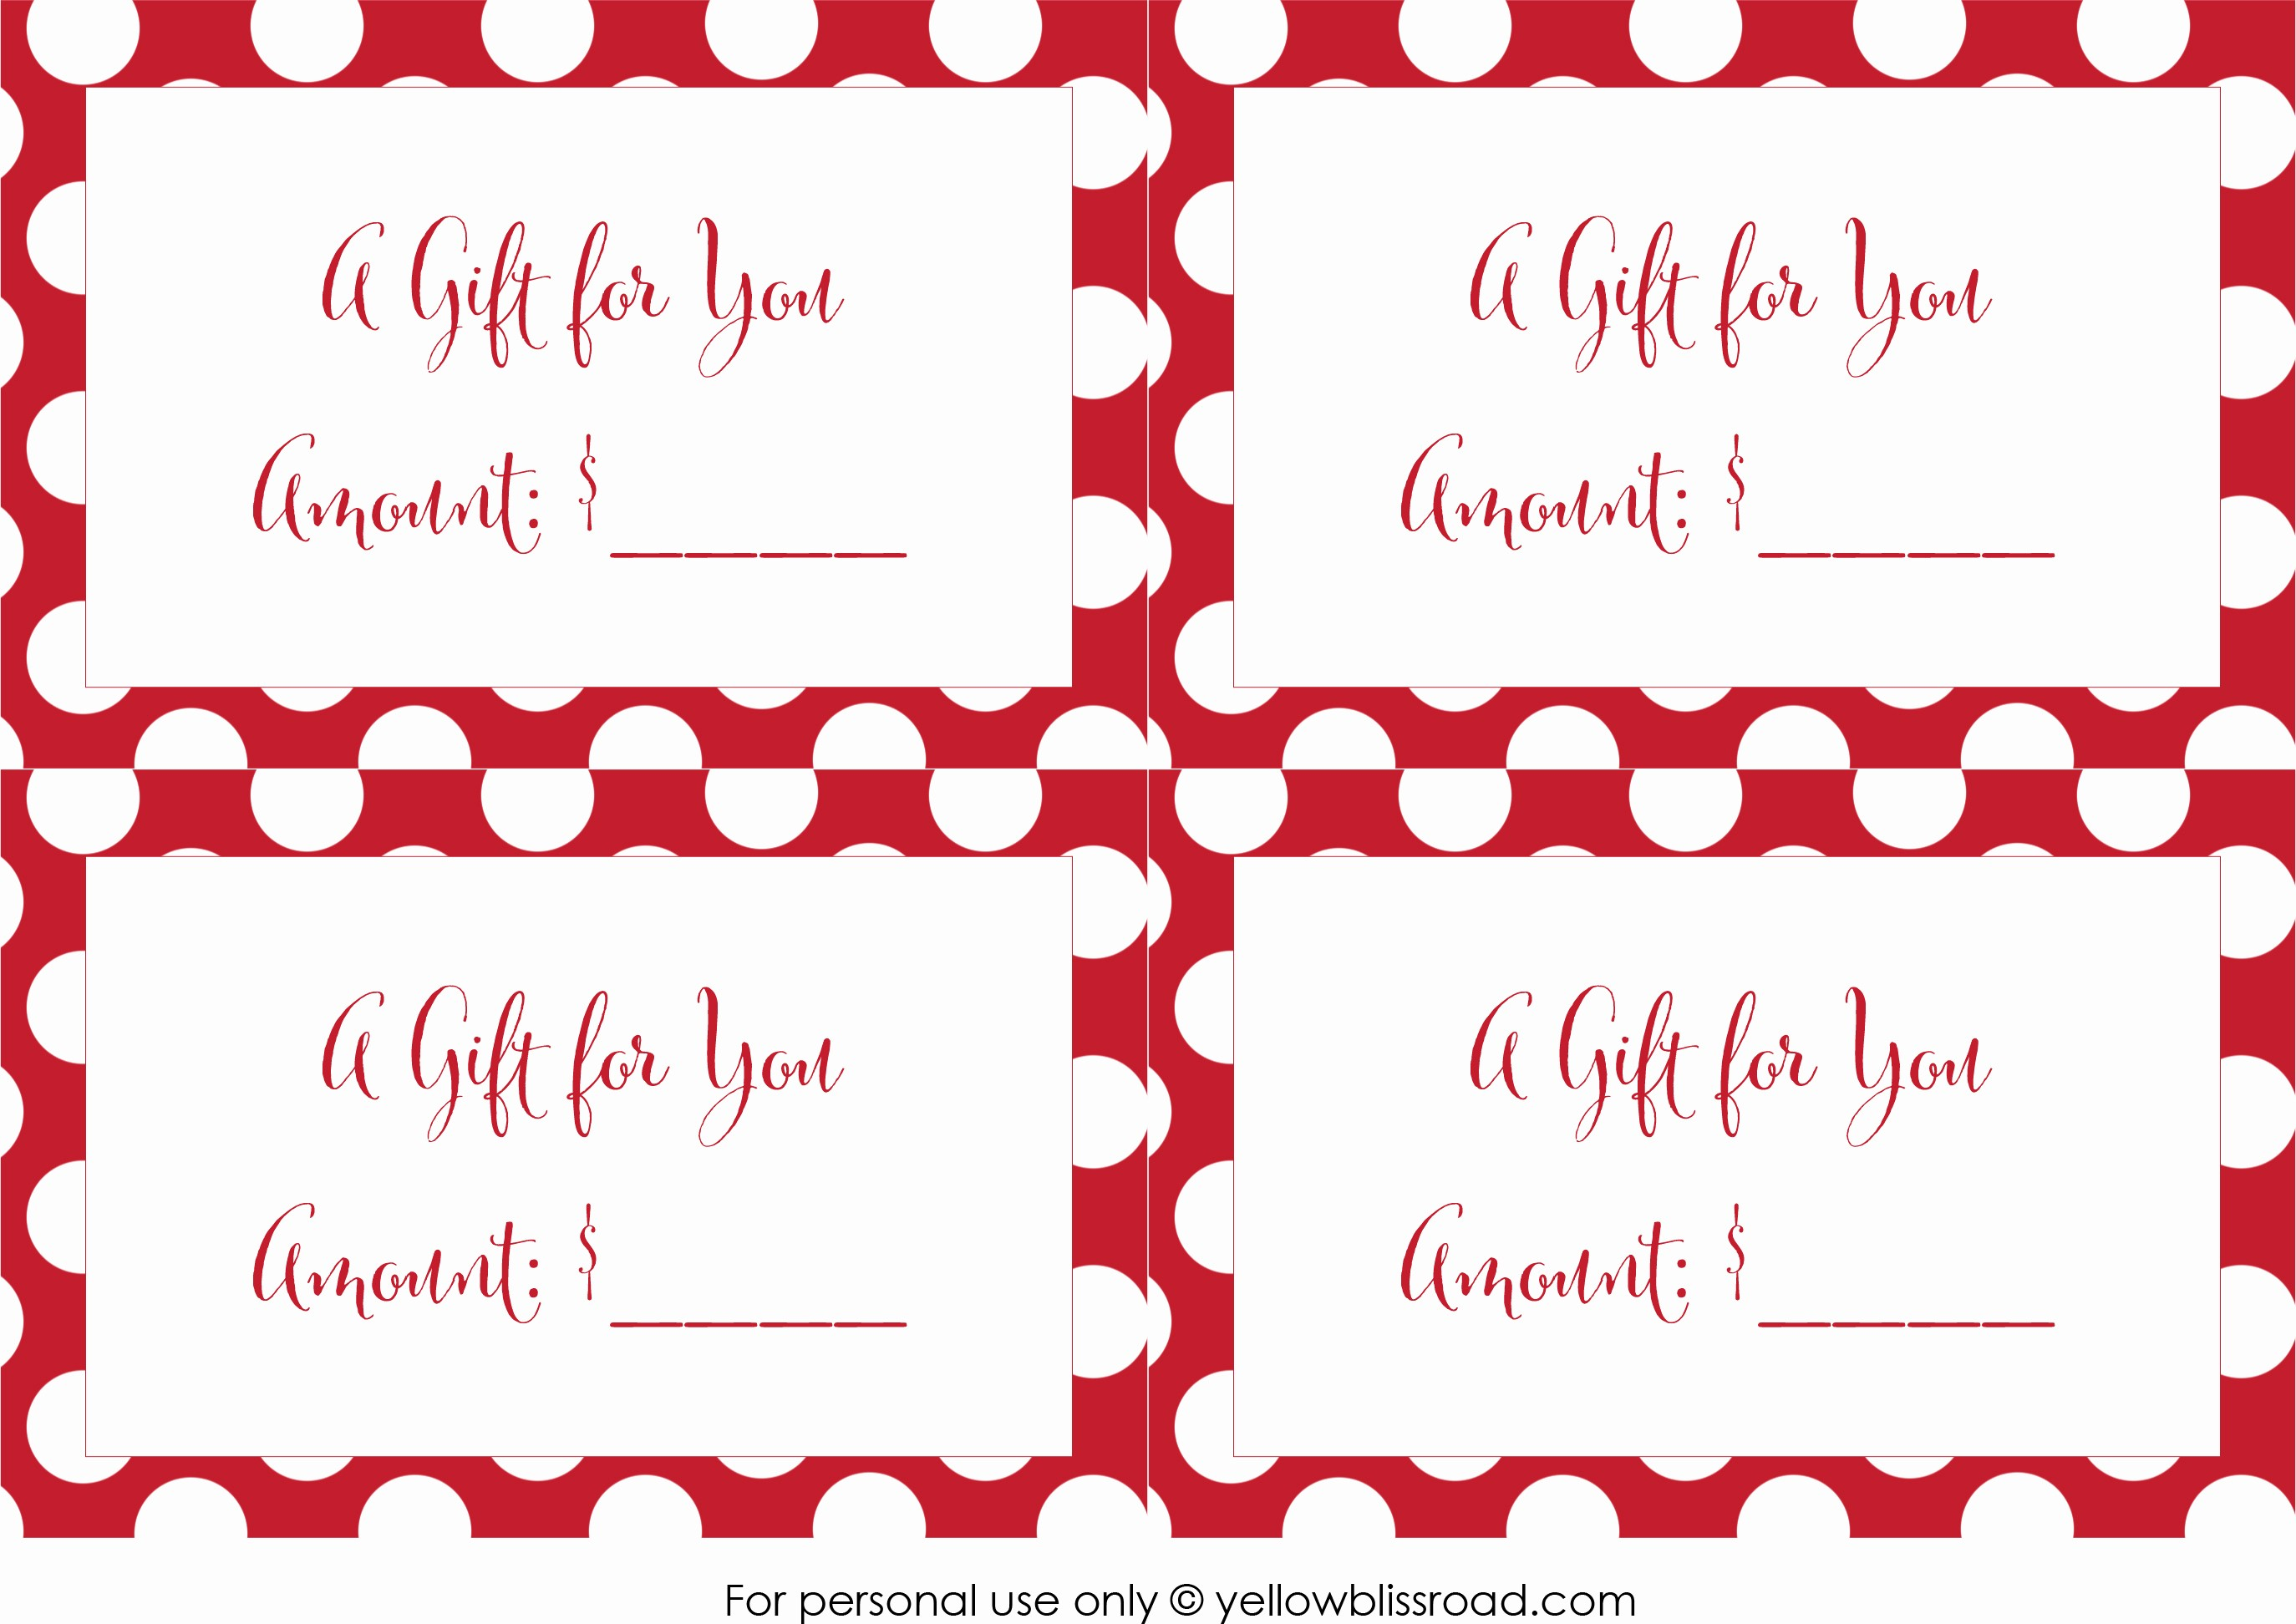 Printable Gift Certificates Online Free Beautiful Free Printable Gift Card Envelopes Yellow Bliss Road